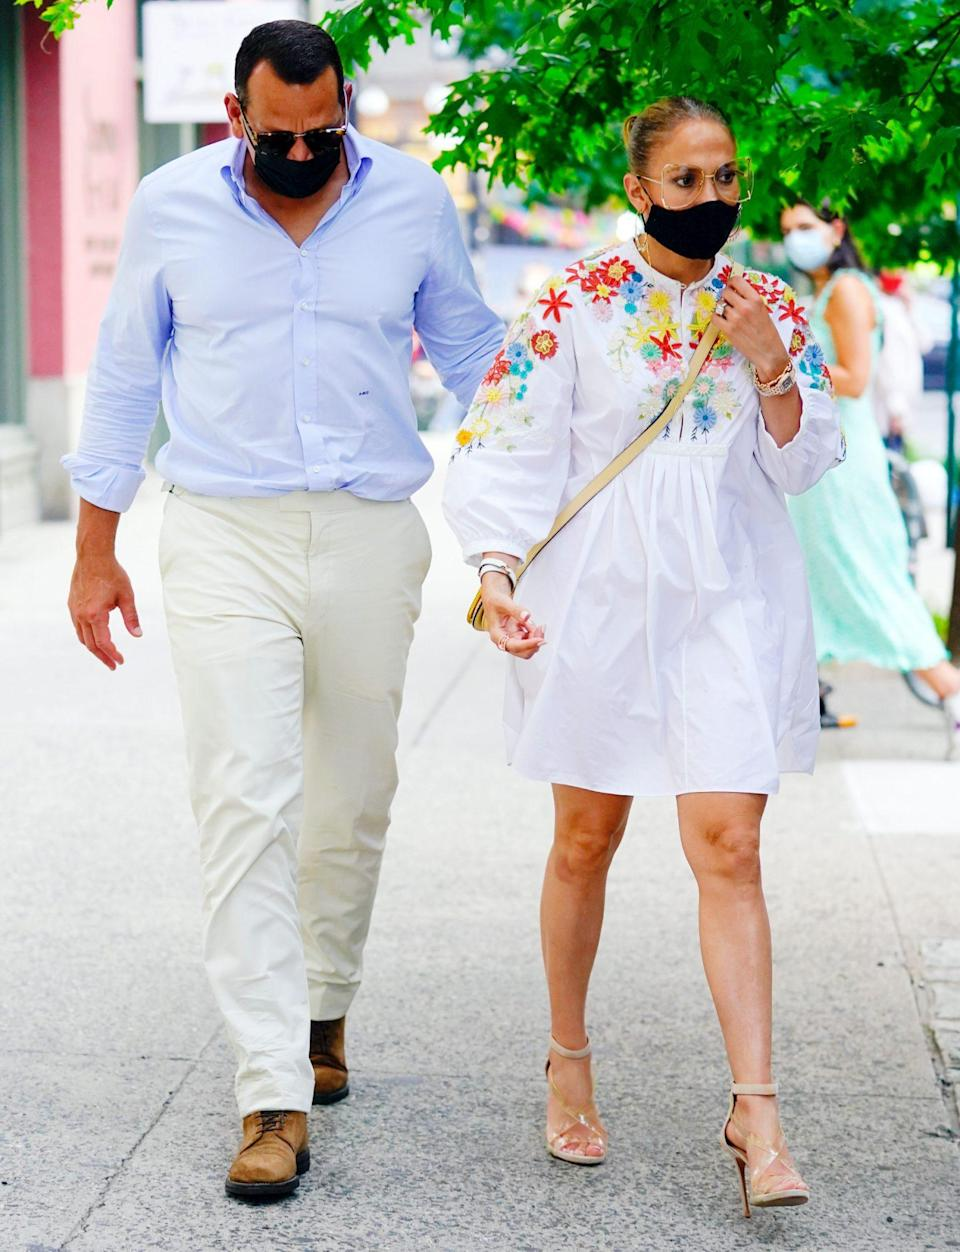 <p>Jennfier Lopez and Alex Rodriguez make their way through N.Y.C. on Wednesday in summery outfits and matching black masks.</p>